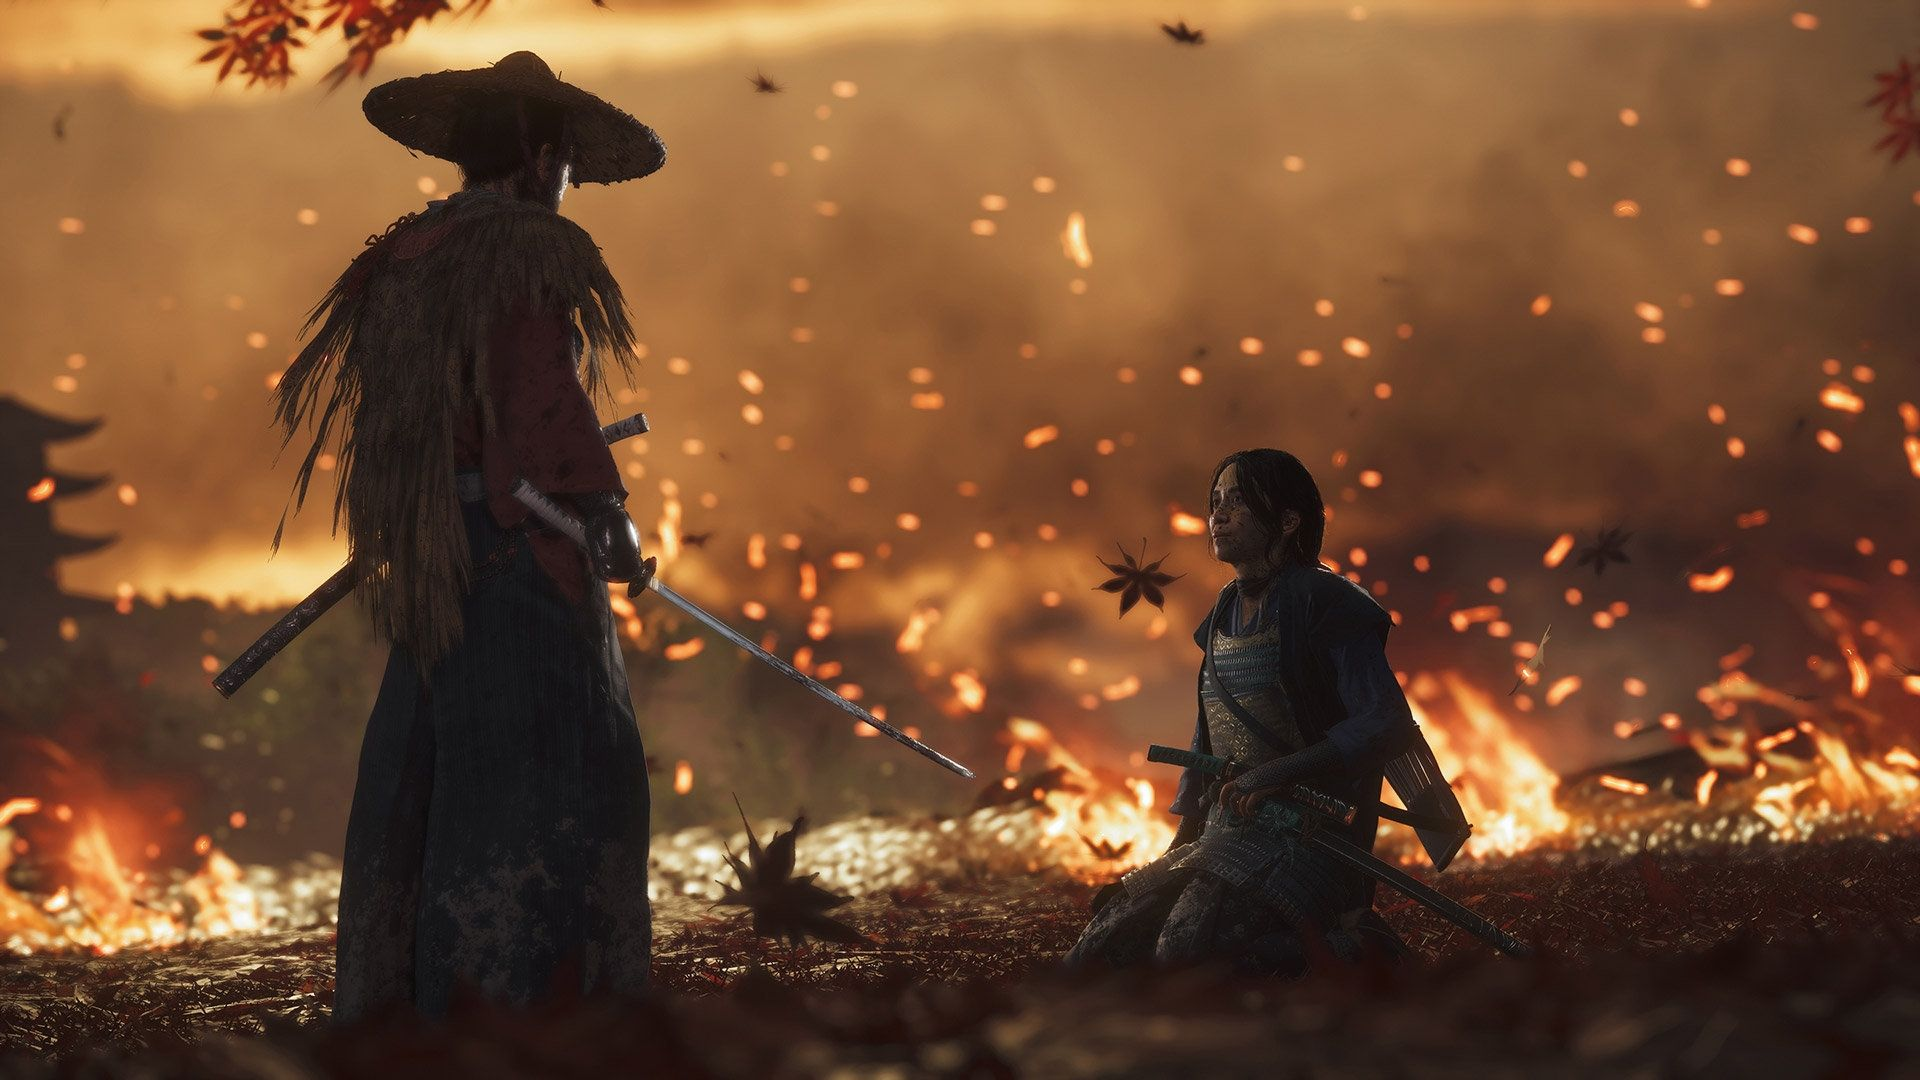 Ghost of Tsushima (PS4) - 7